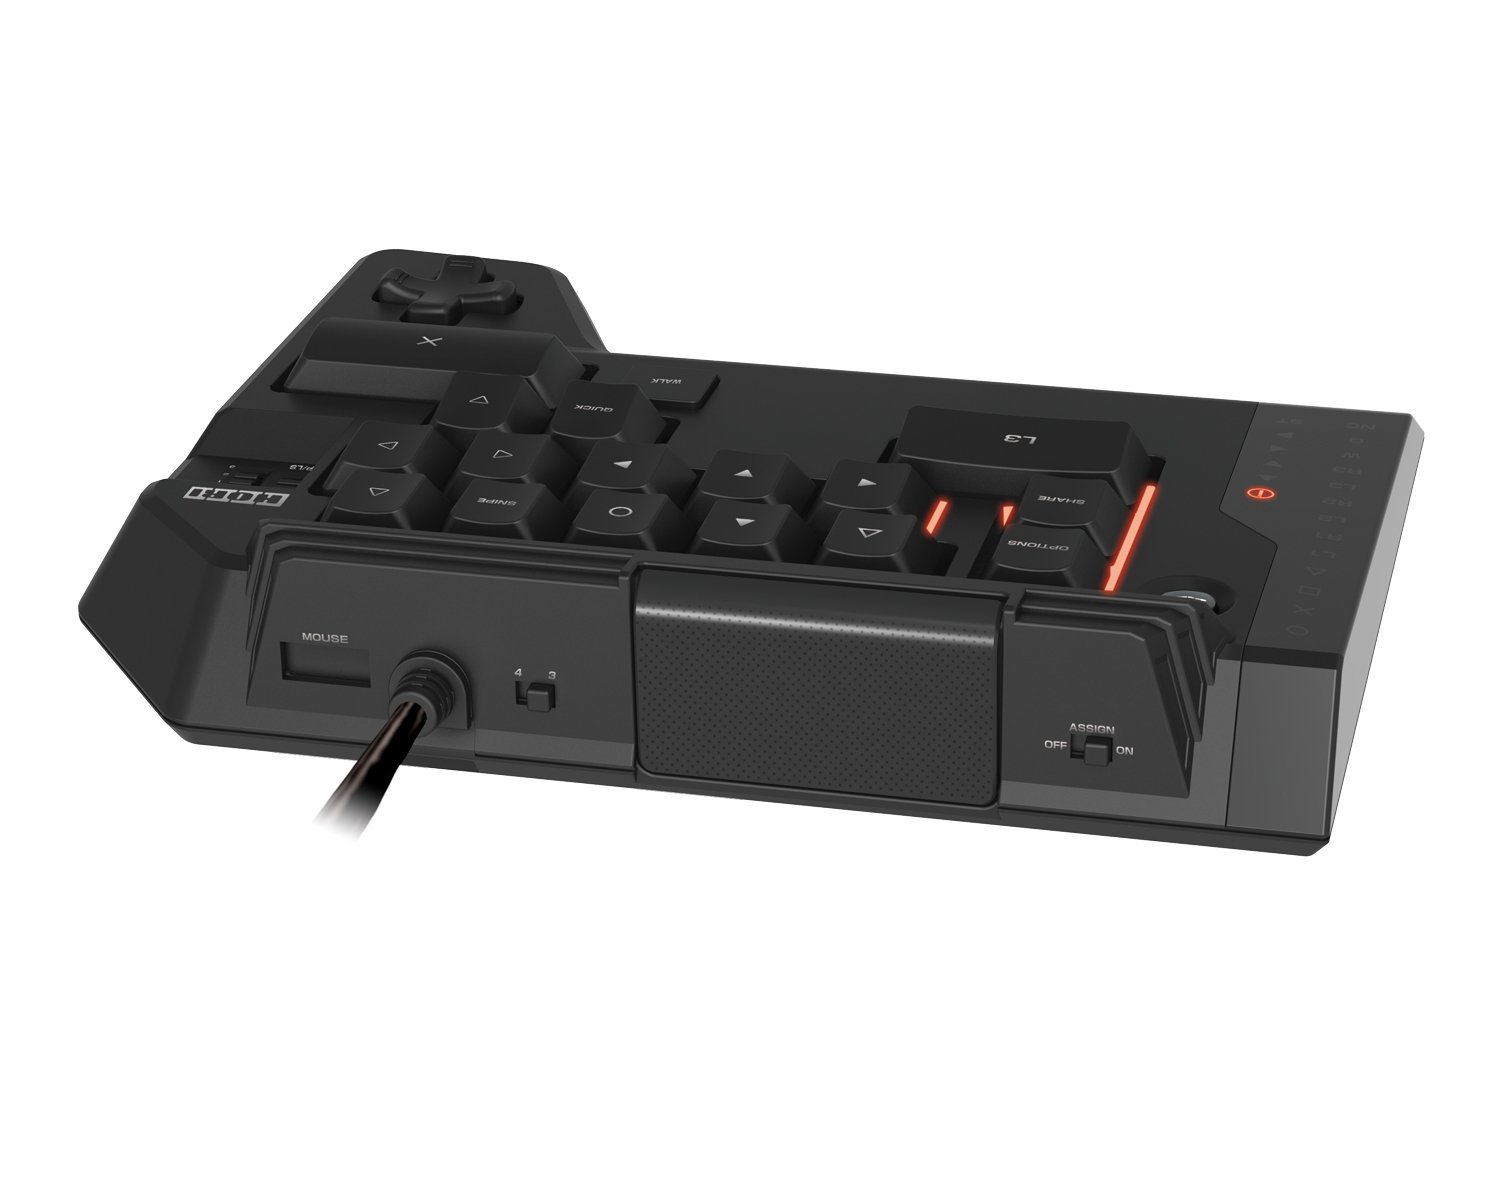 ps4-keyboard-mouse-controller-replicates-pc-style-gaming-14379989309